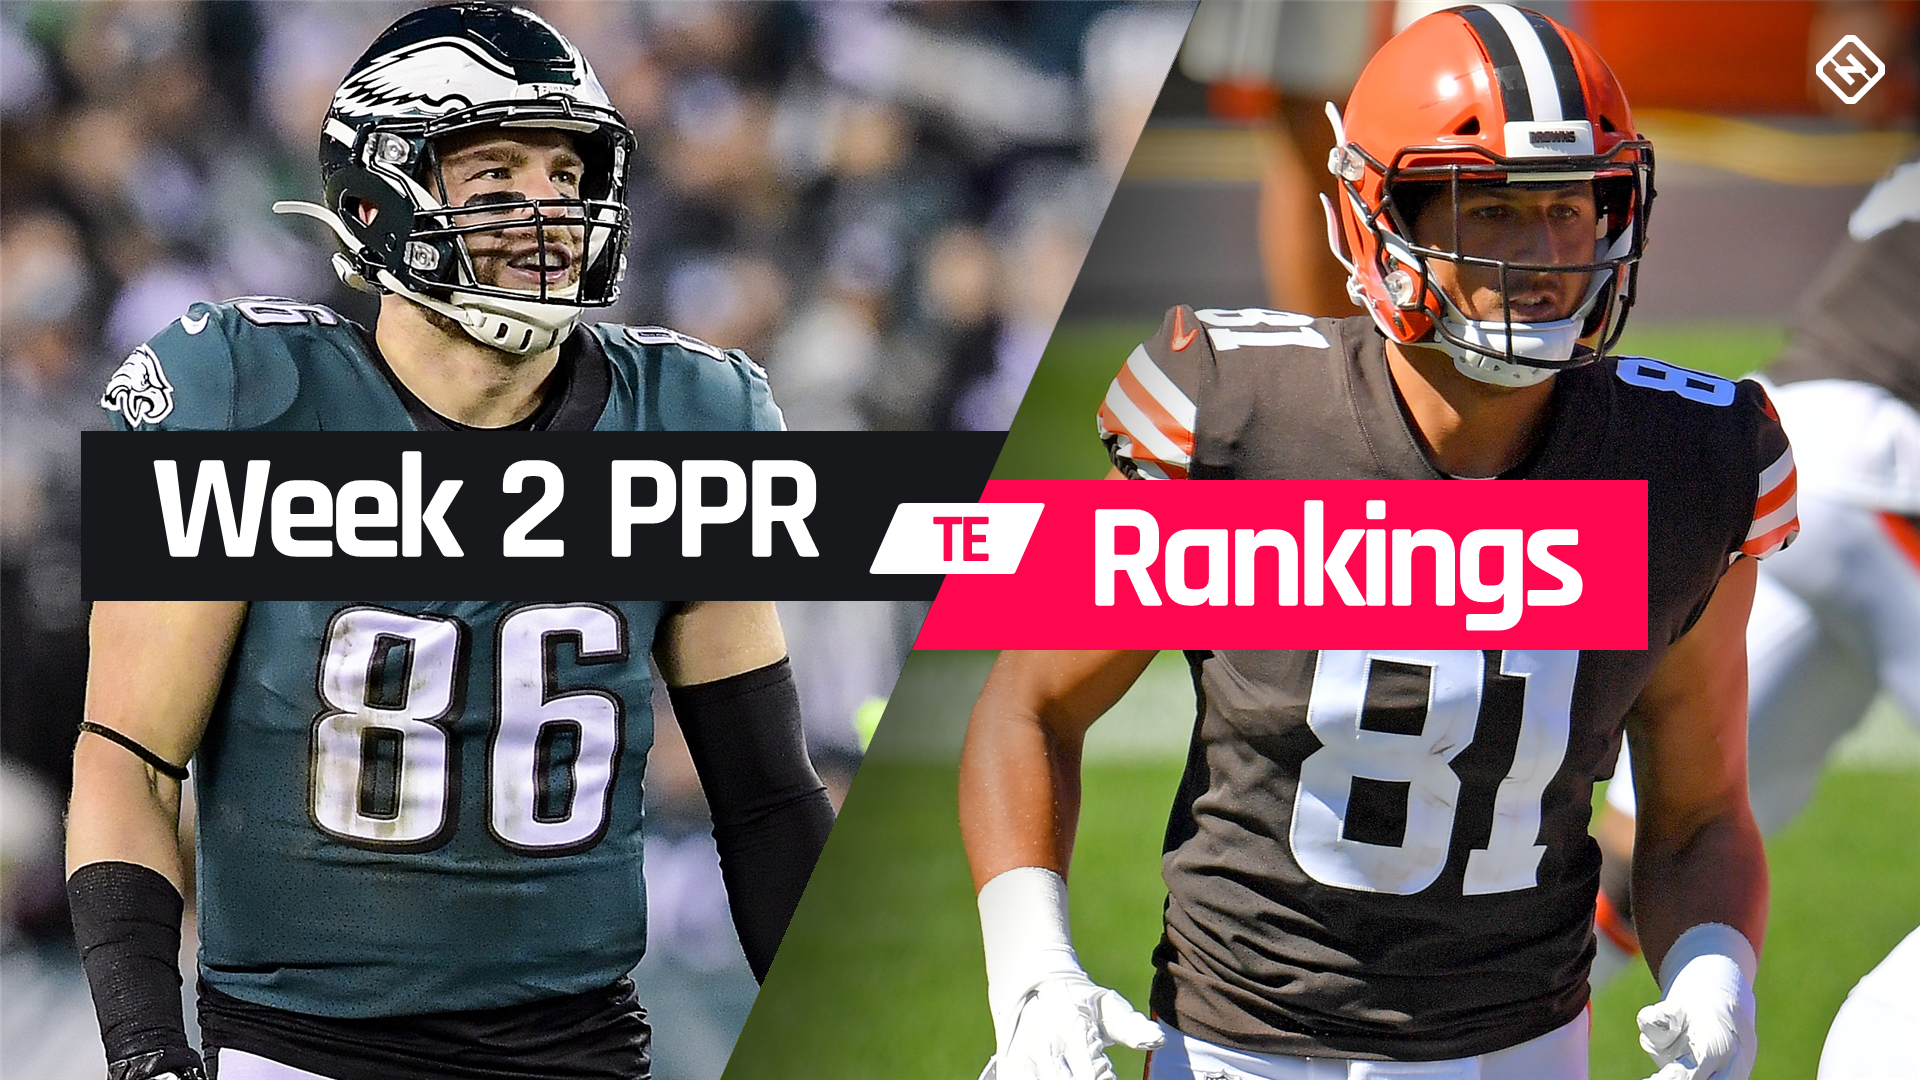 https://images.daznservices.com/di/library/sporting_news/d/1e/week2-te-ppr-rankings-ftr_cl83w1z2zvs117t1ig085iith.png?t=2001089556&w=%7Bwidth%7D&quality=80